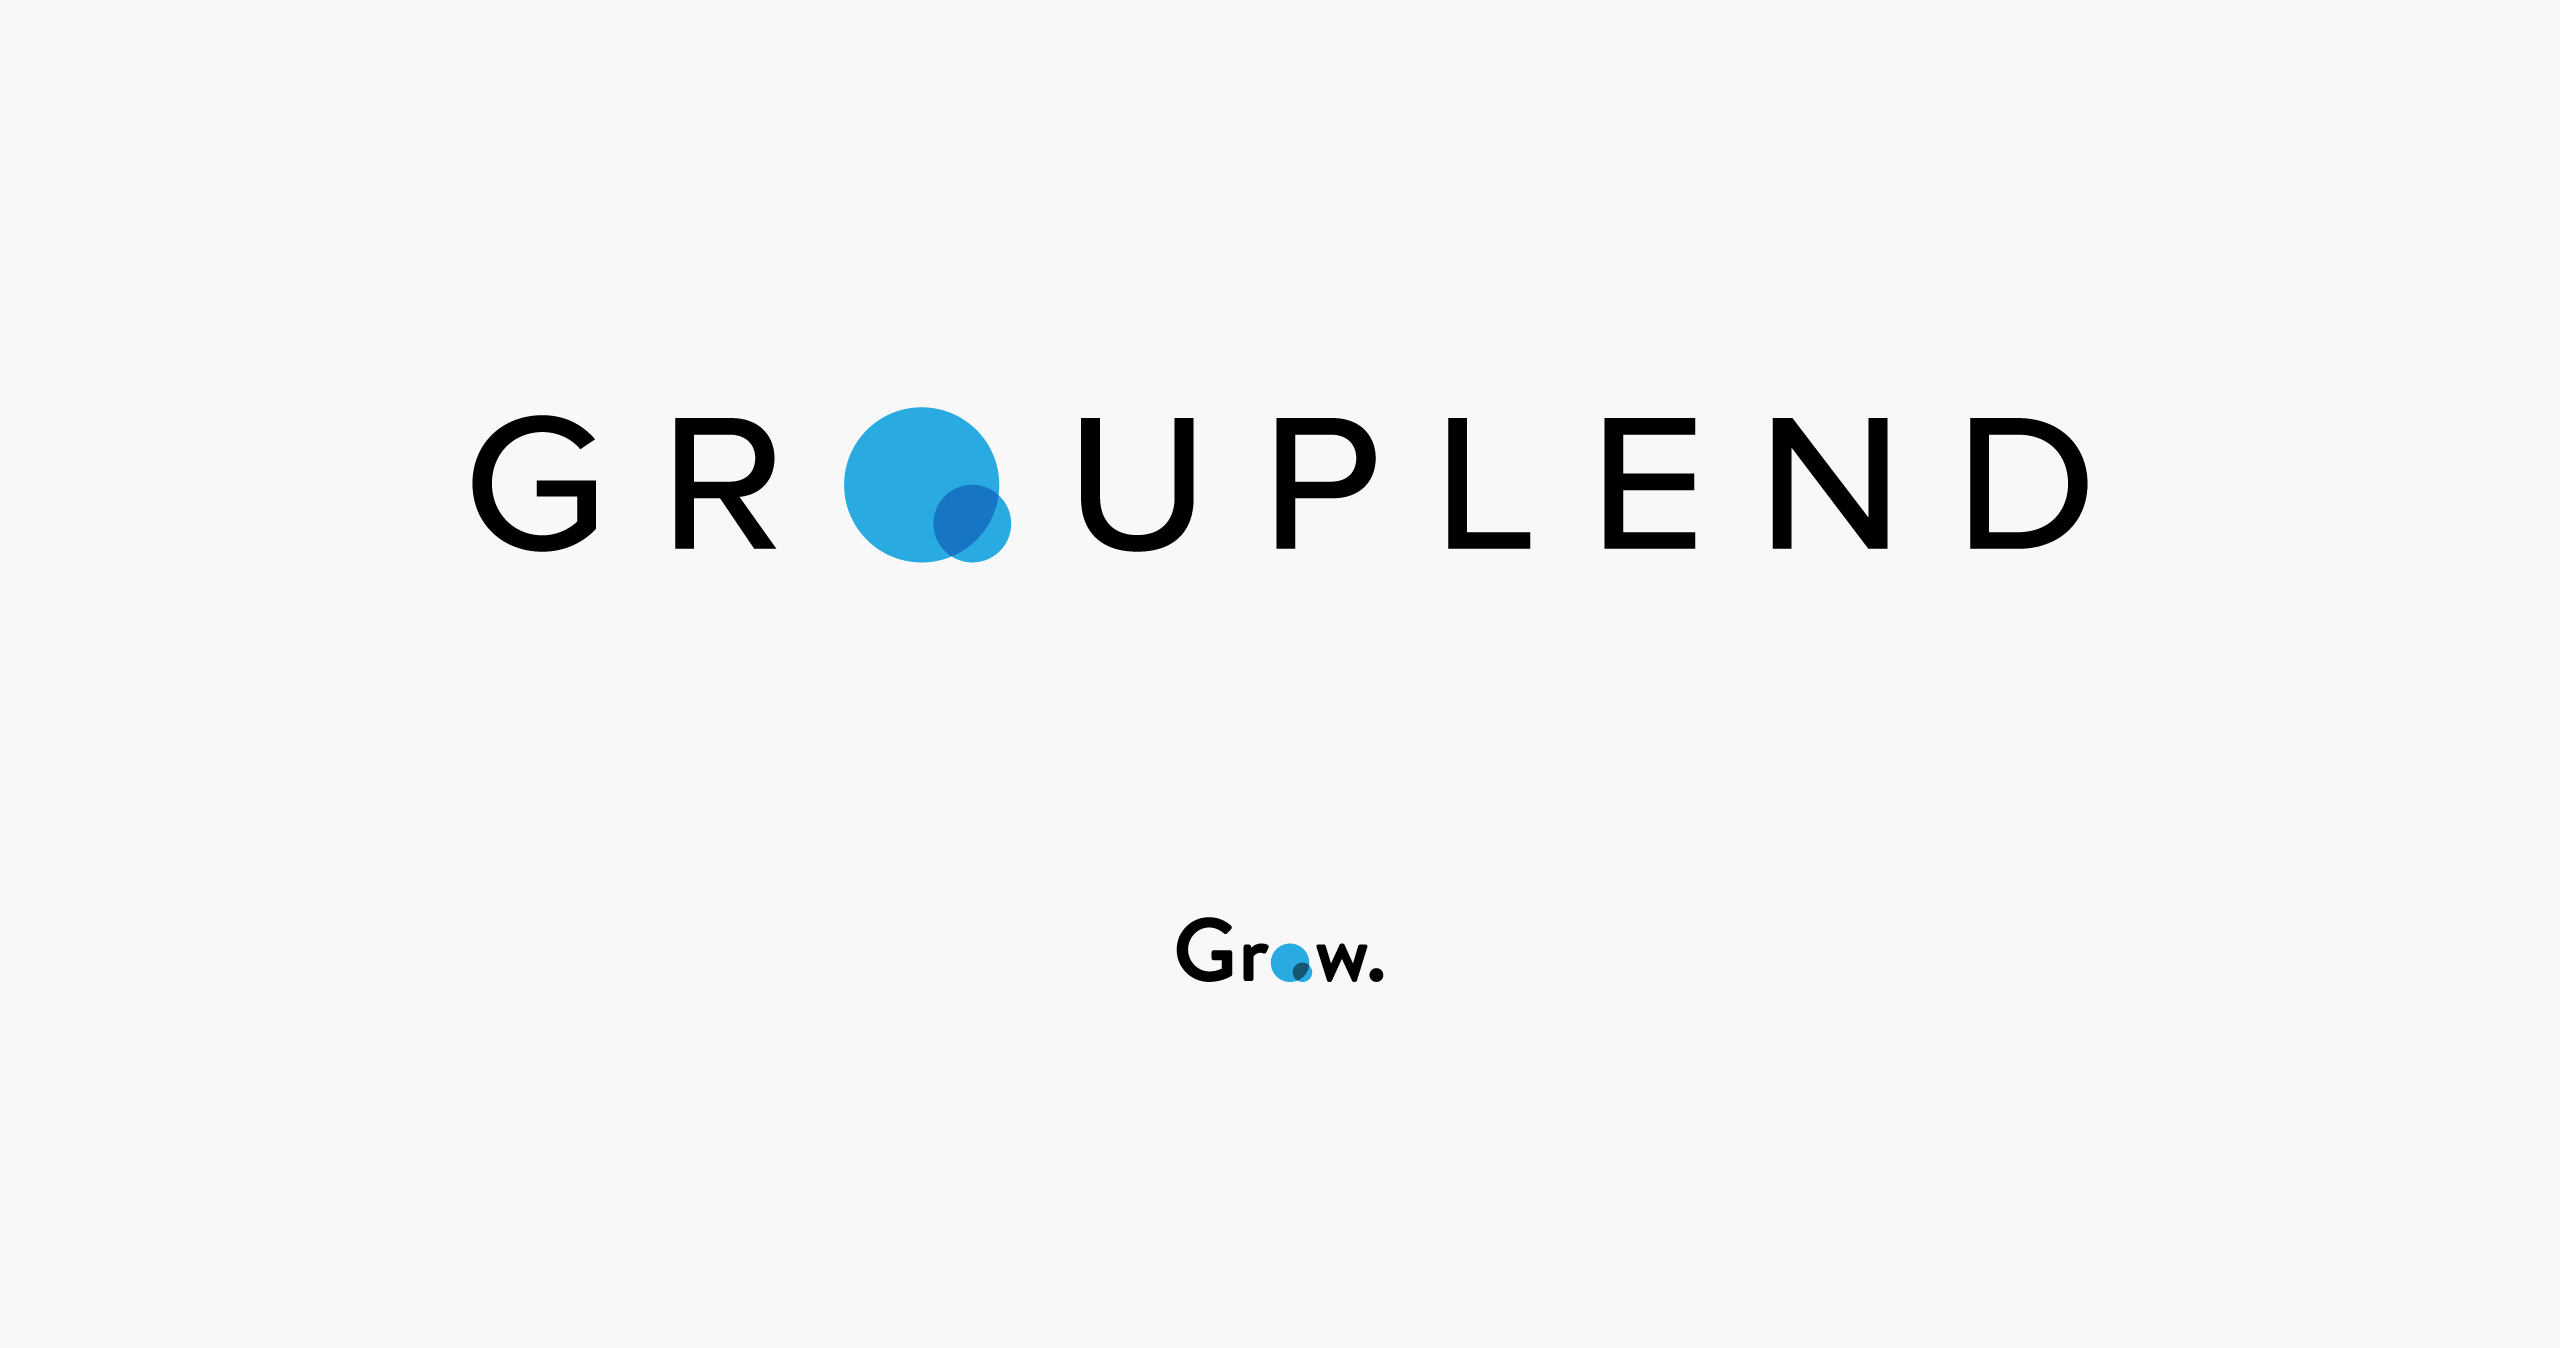 Grouplend logo centered on a light grey background with its descendent Grow financial logo below it — by Yagnyuk.